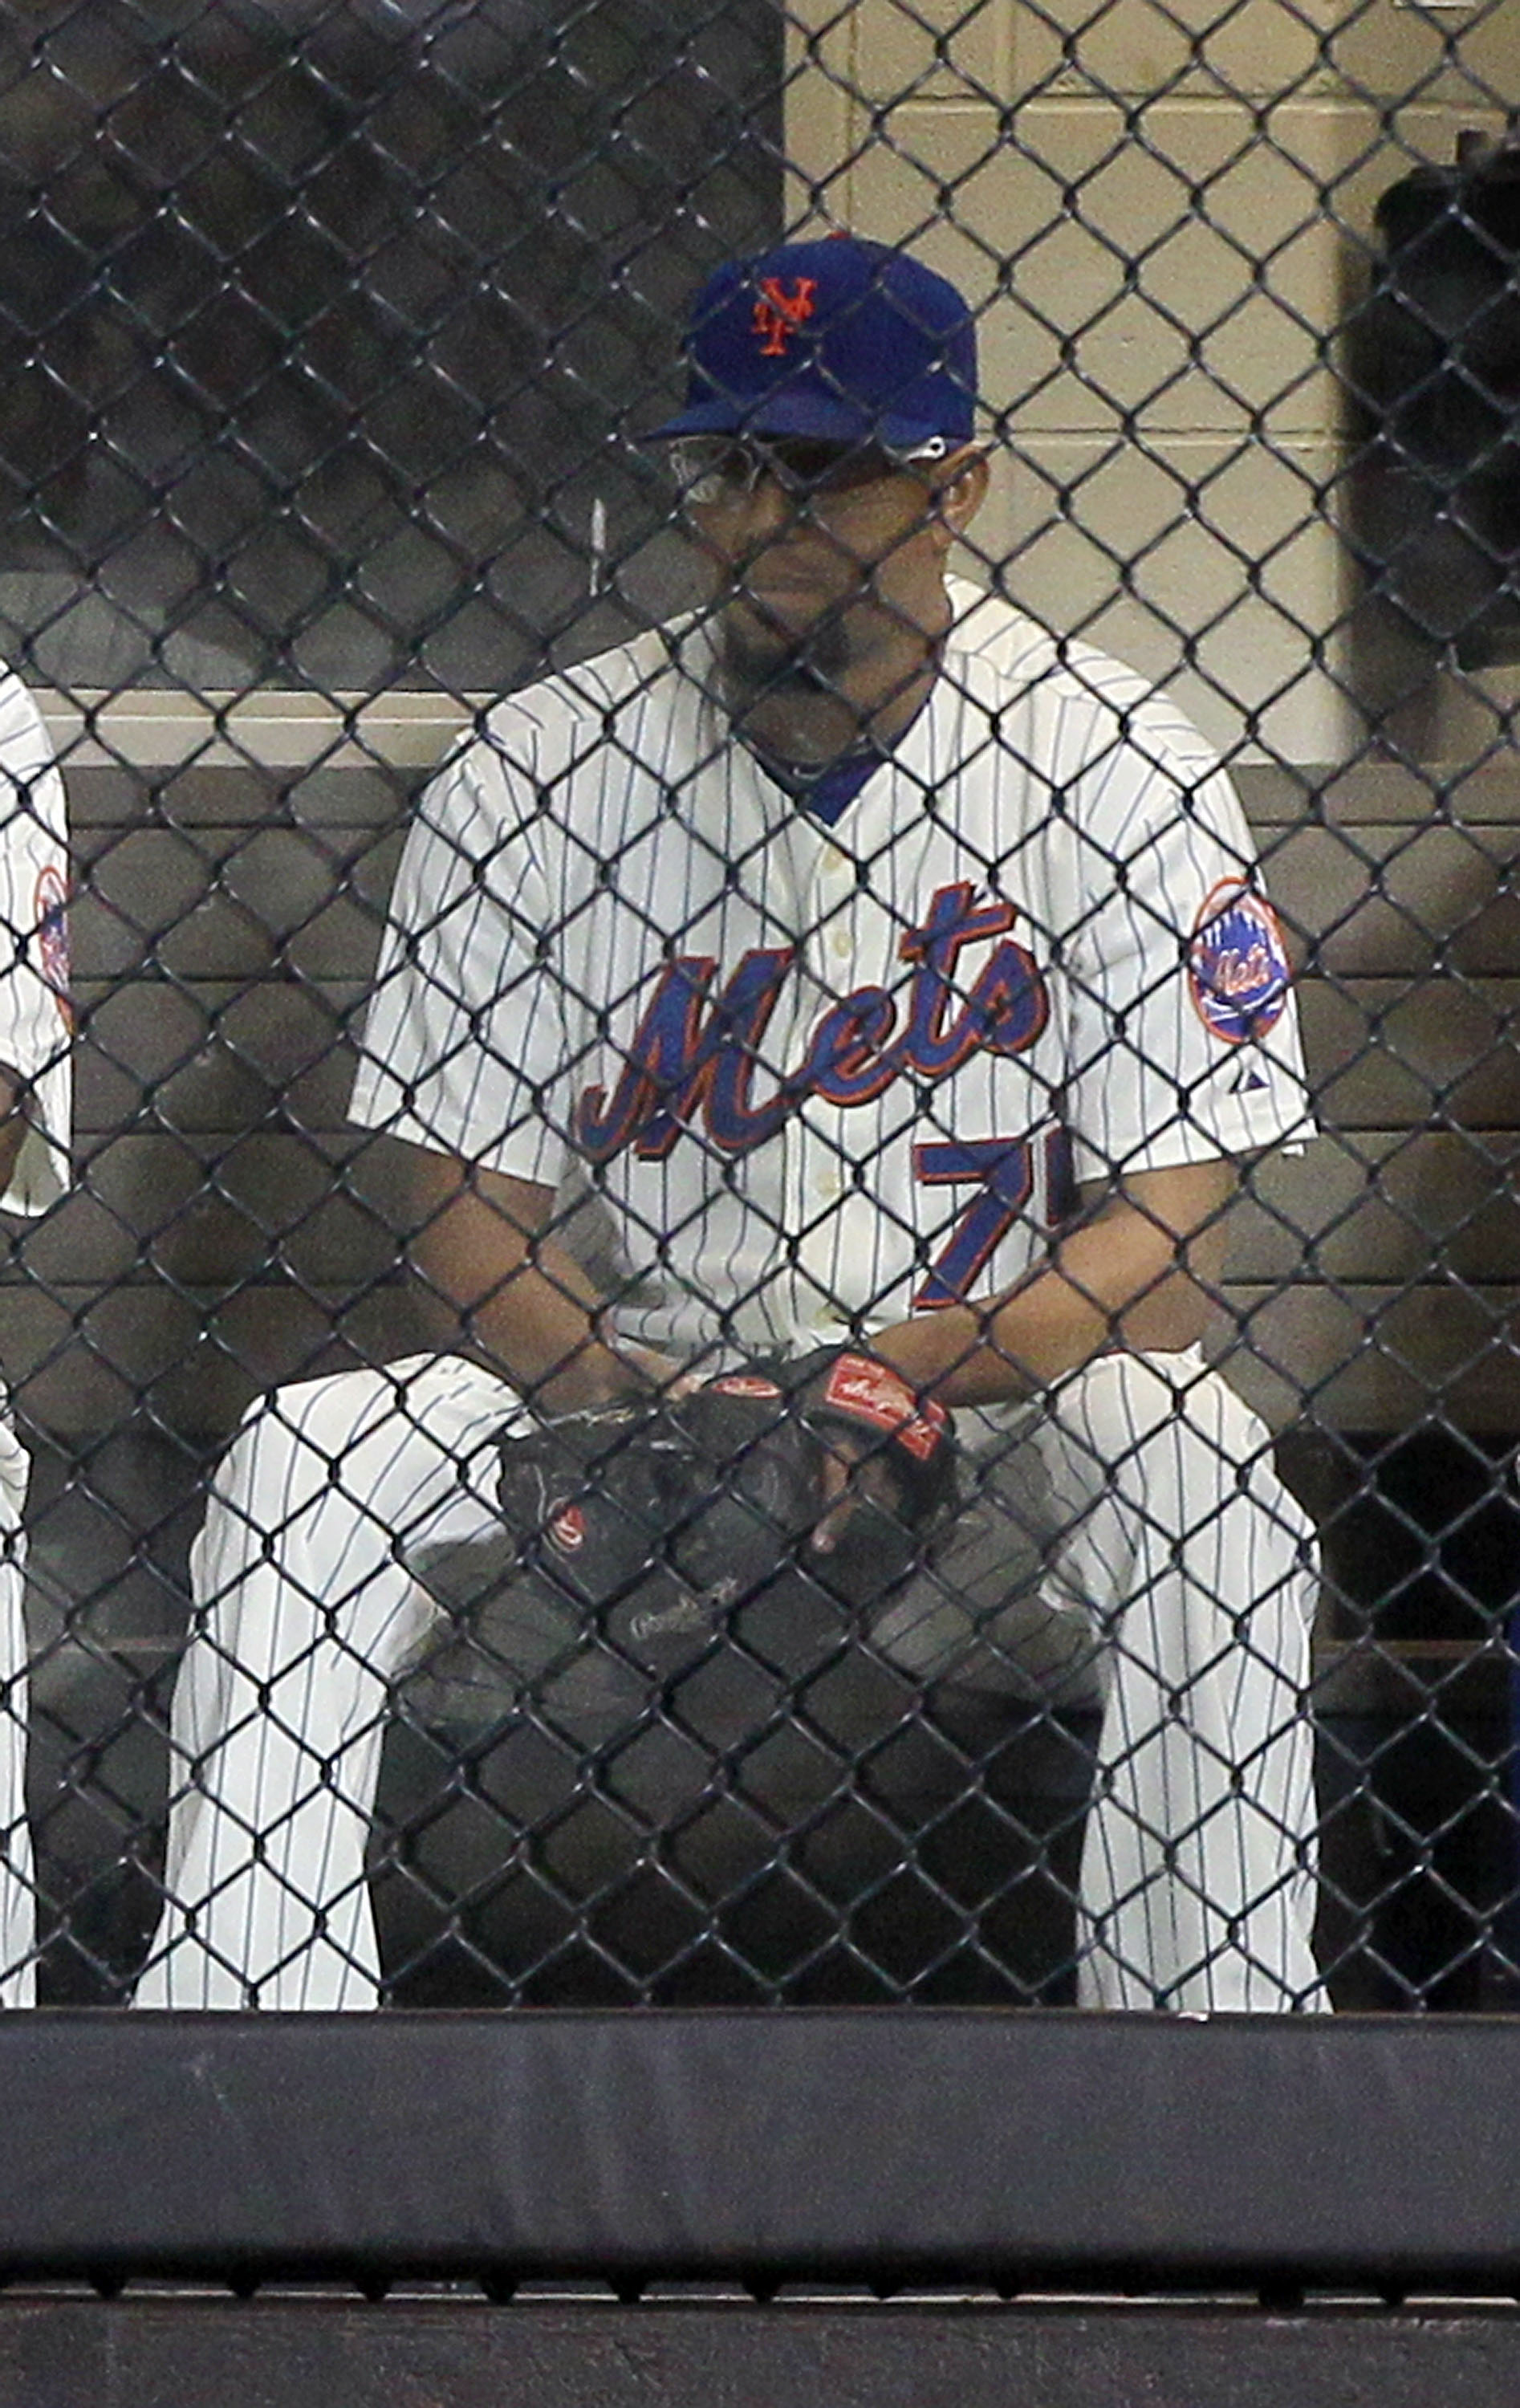 NEW YORK - AUGUST 14:  Francisco Rodriguez #75 of the New York Mets looks on from the bullpen against the Philadelphia Phillies on August 14, 2010 at Citi Field in the Flushing neighborhood of the Queens borough of New York City. The Phillies defeated the